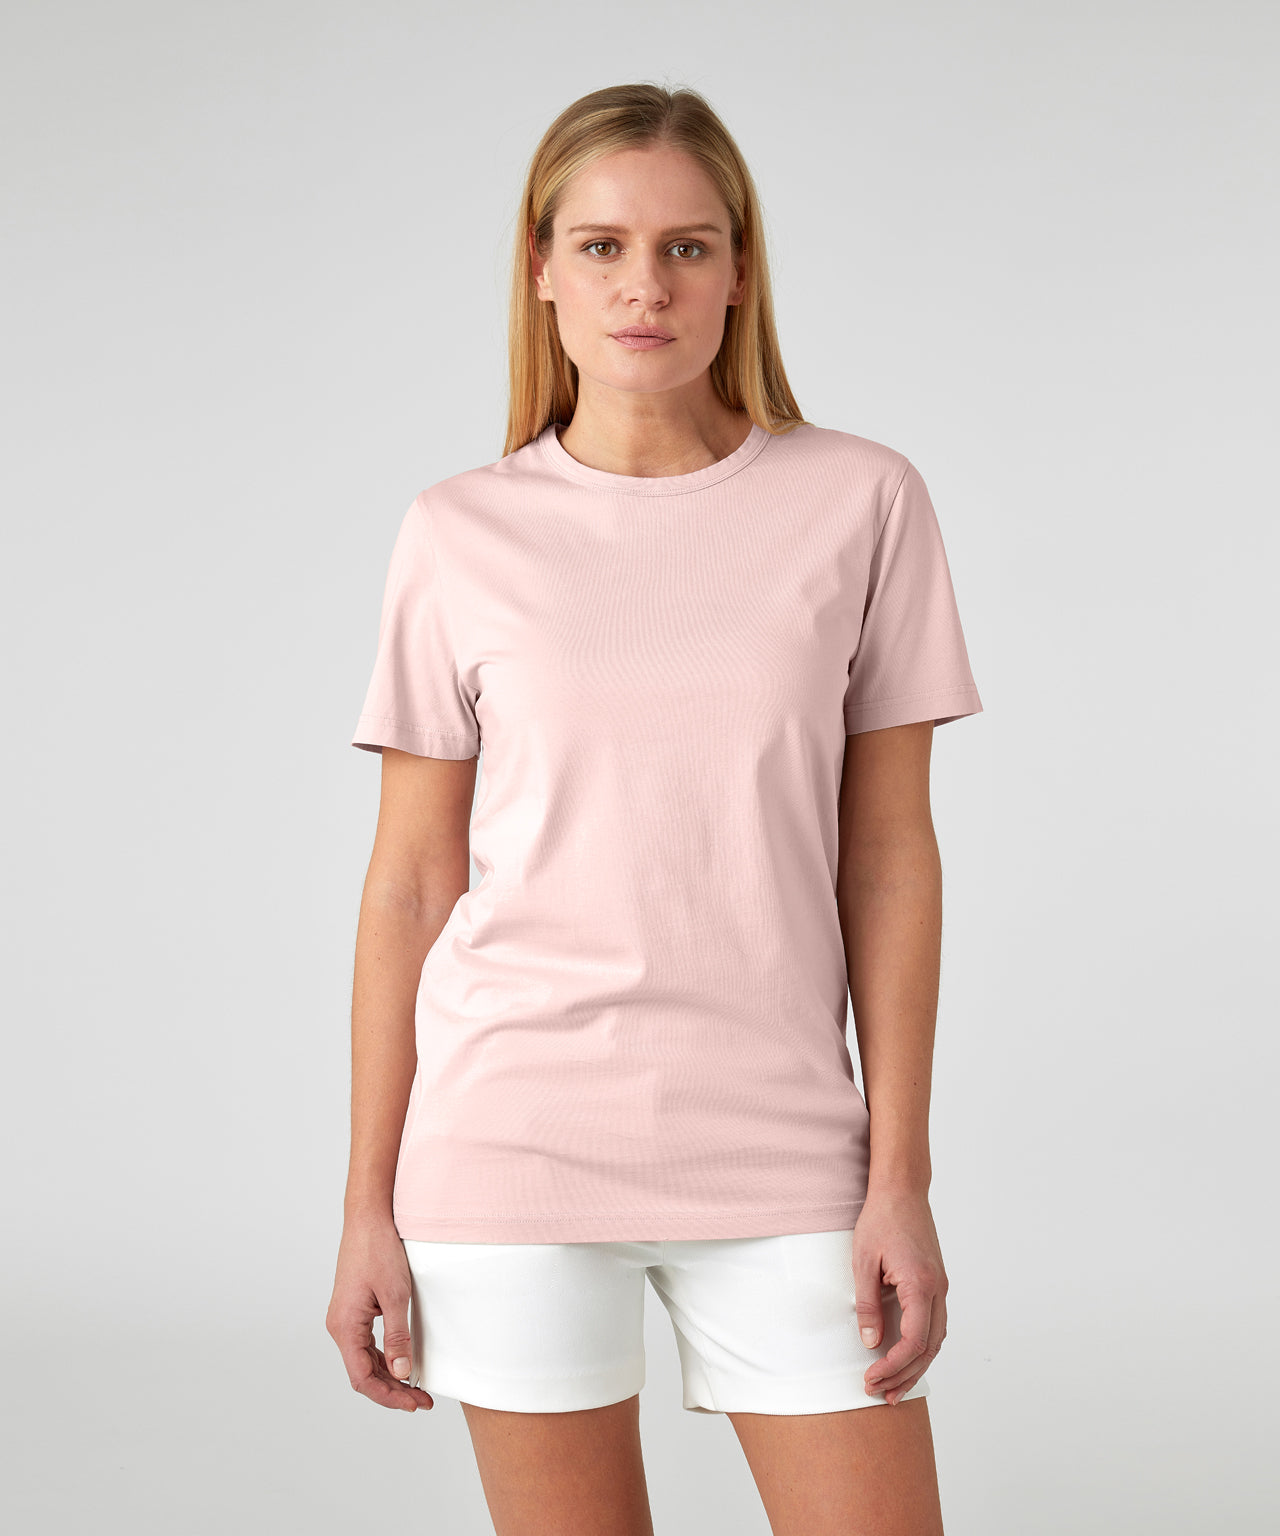 T-Shirt Eyelet Edition His For Her - light pink